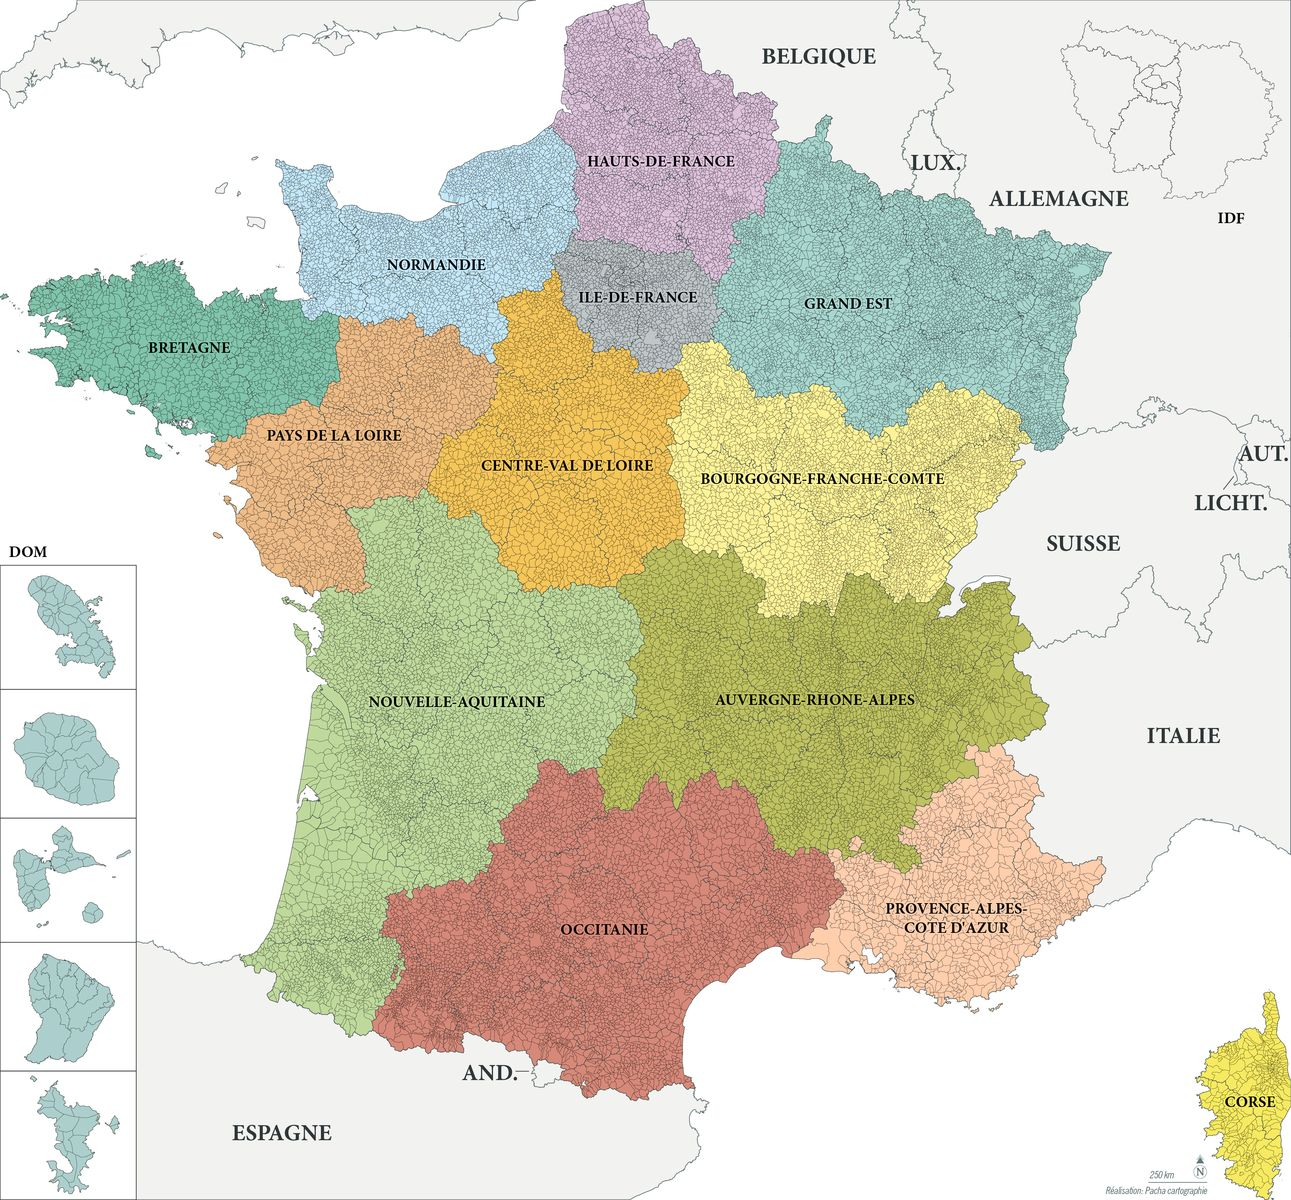 Fond de carte France - Communes - Guillaume Sciaux - Cartographe professionnel